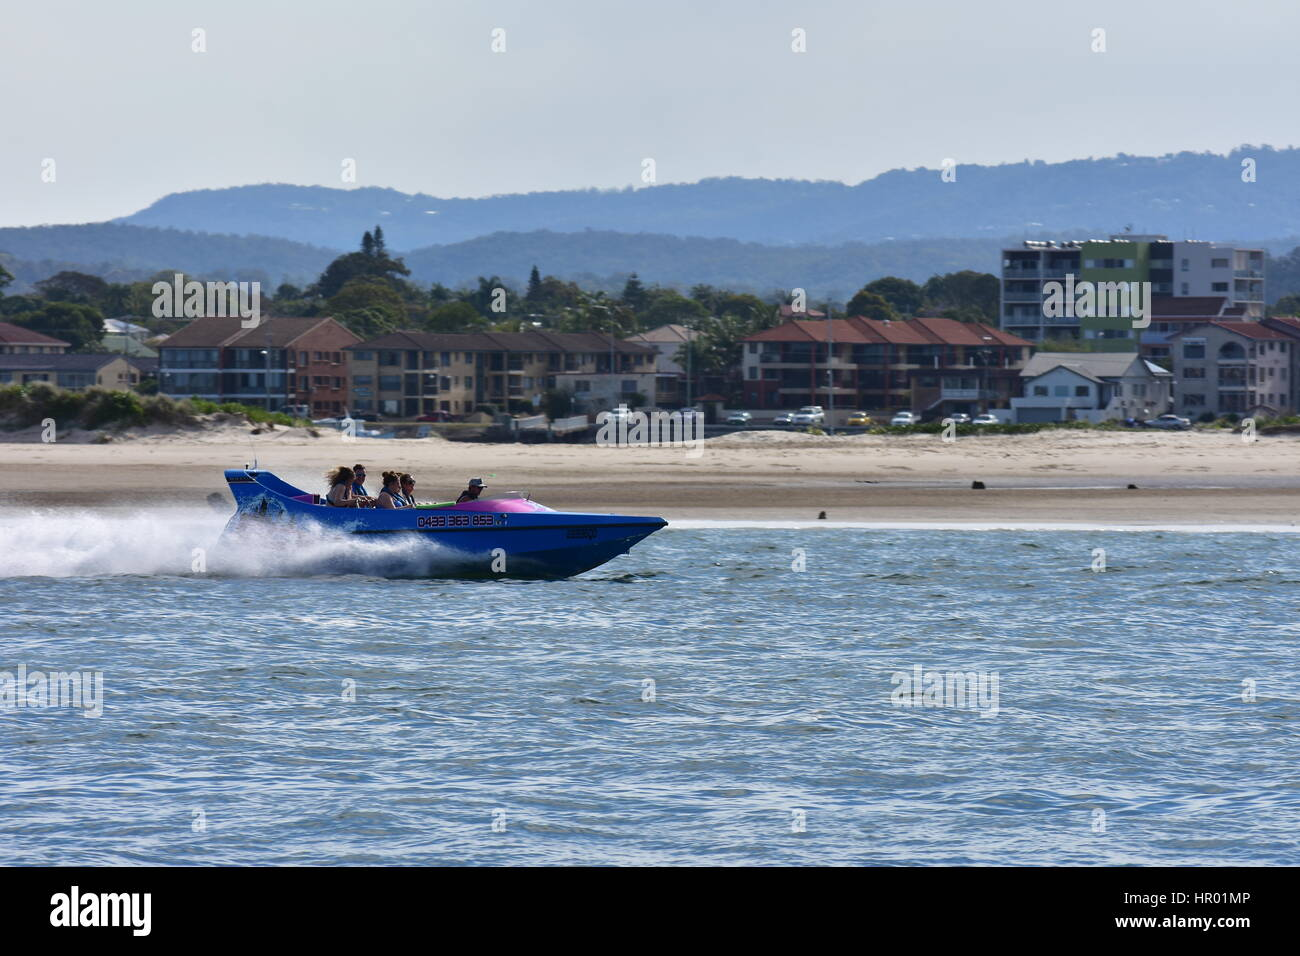 Jet speedboat cruising on water with townhouses and apartment buildings on shore in background. - Stock Image